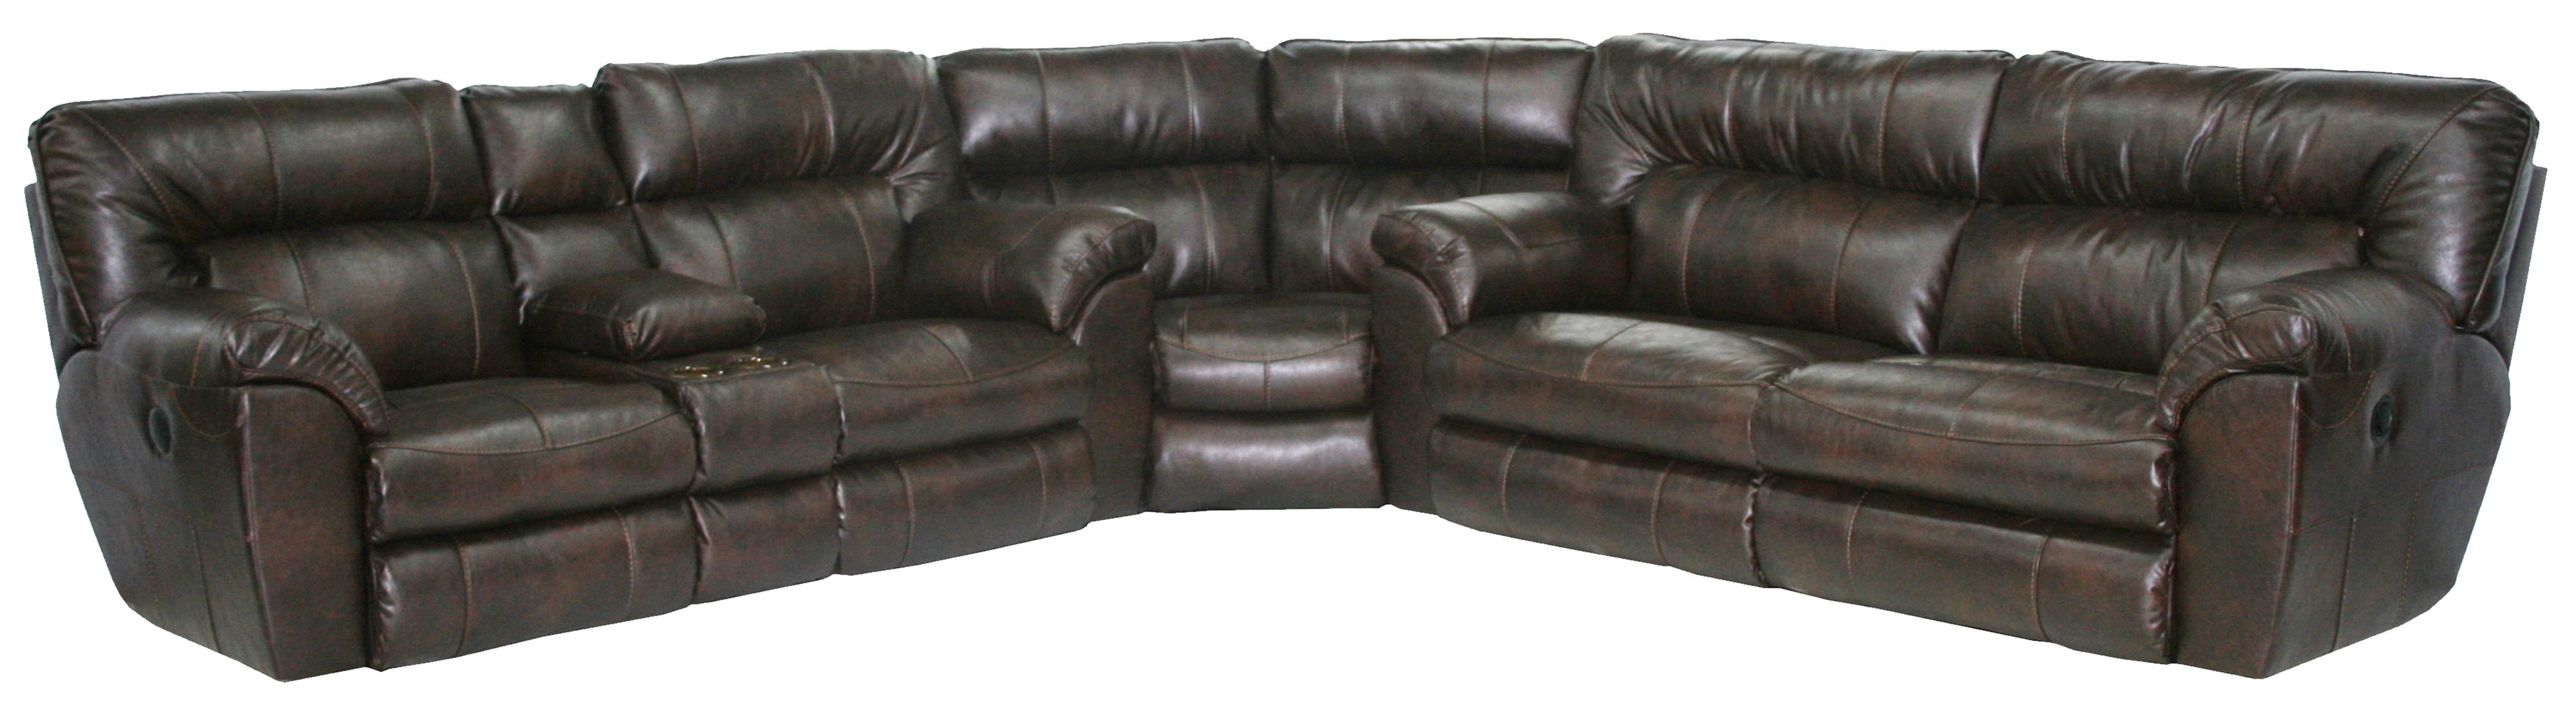 Power reclining sectional sofa with left console by catnapper wolf and gardiner wolf furniture Catnapper loveseat recliner